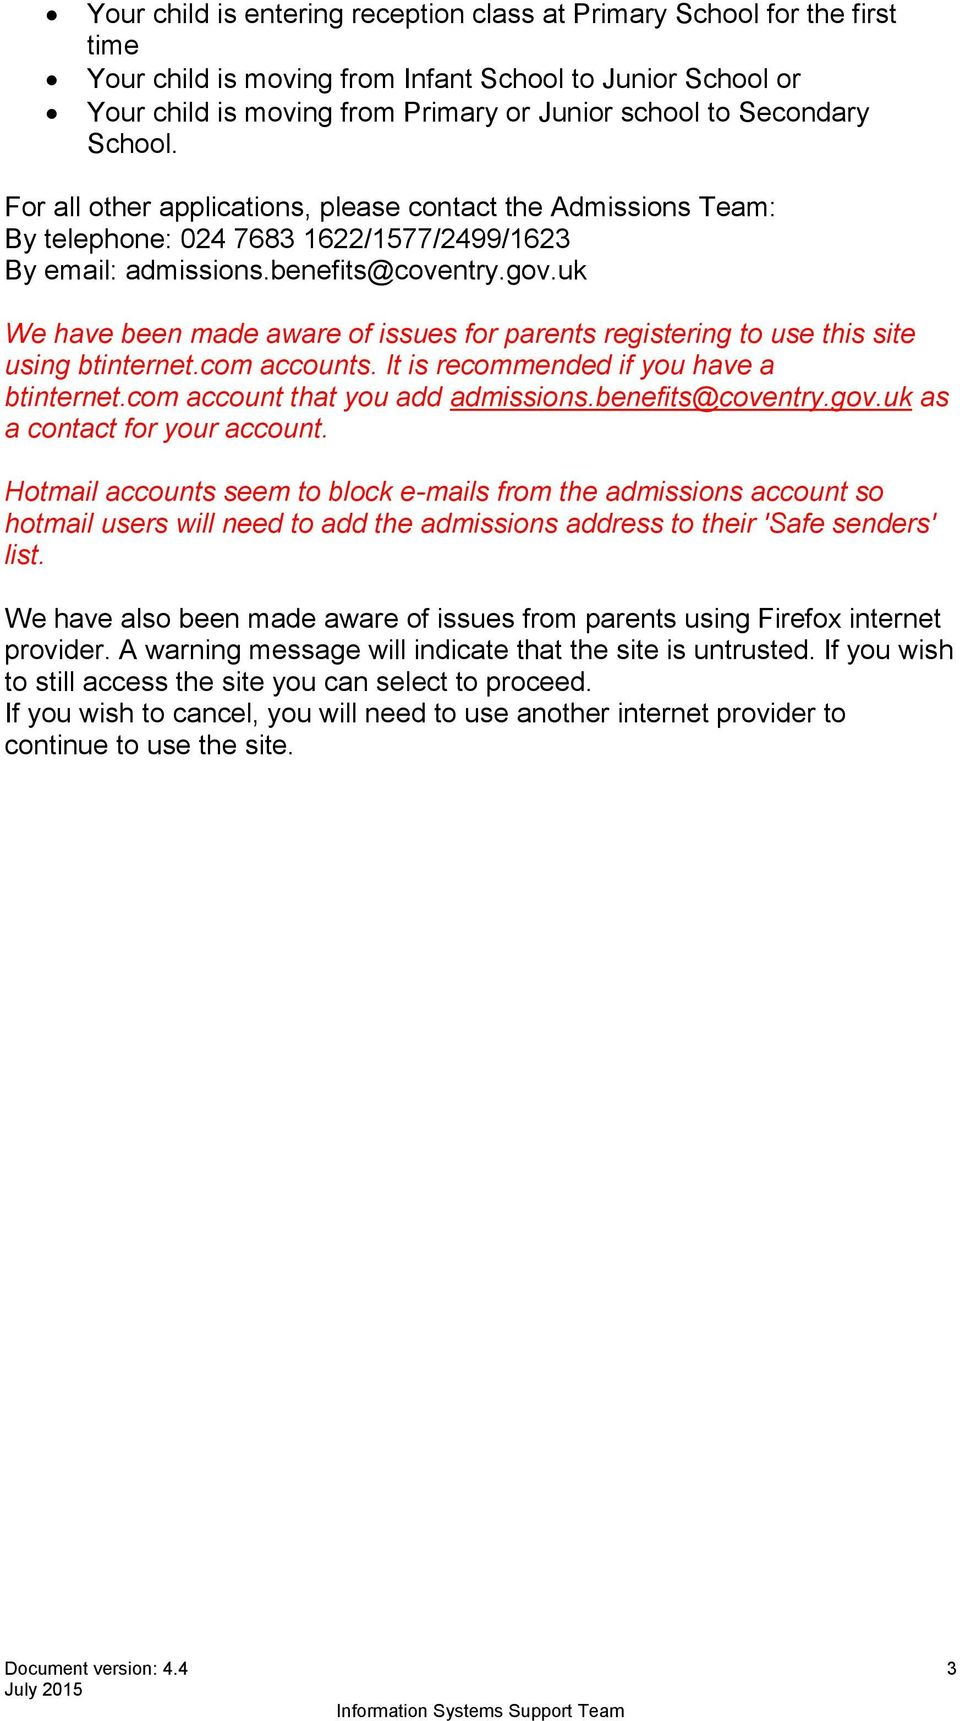 uk We have been made aware of issues for parents registering to use this site using btinternet.com accounts. It is recommended if you have a btinternet.com account that you add admissions.